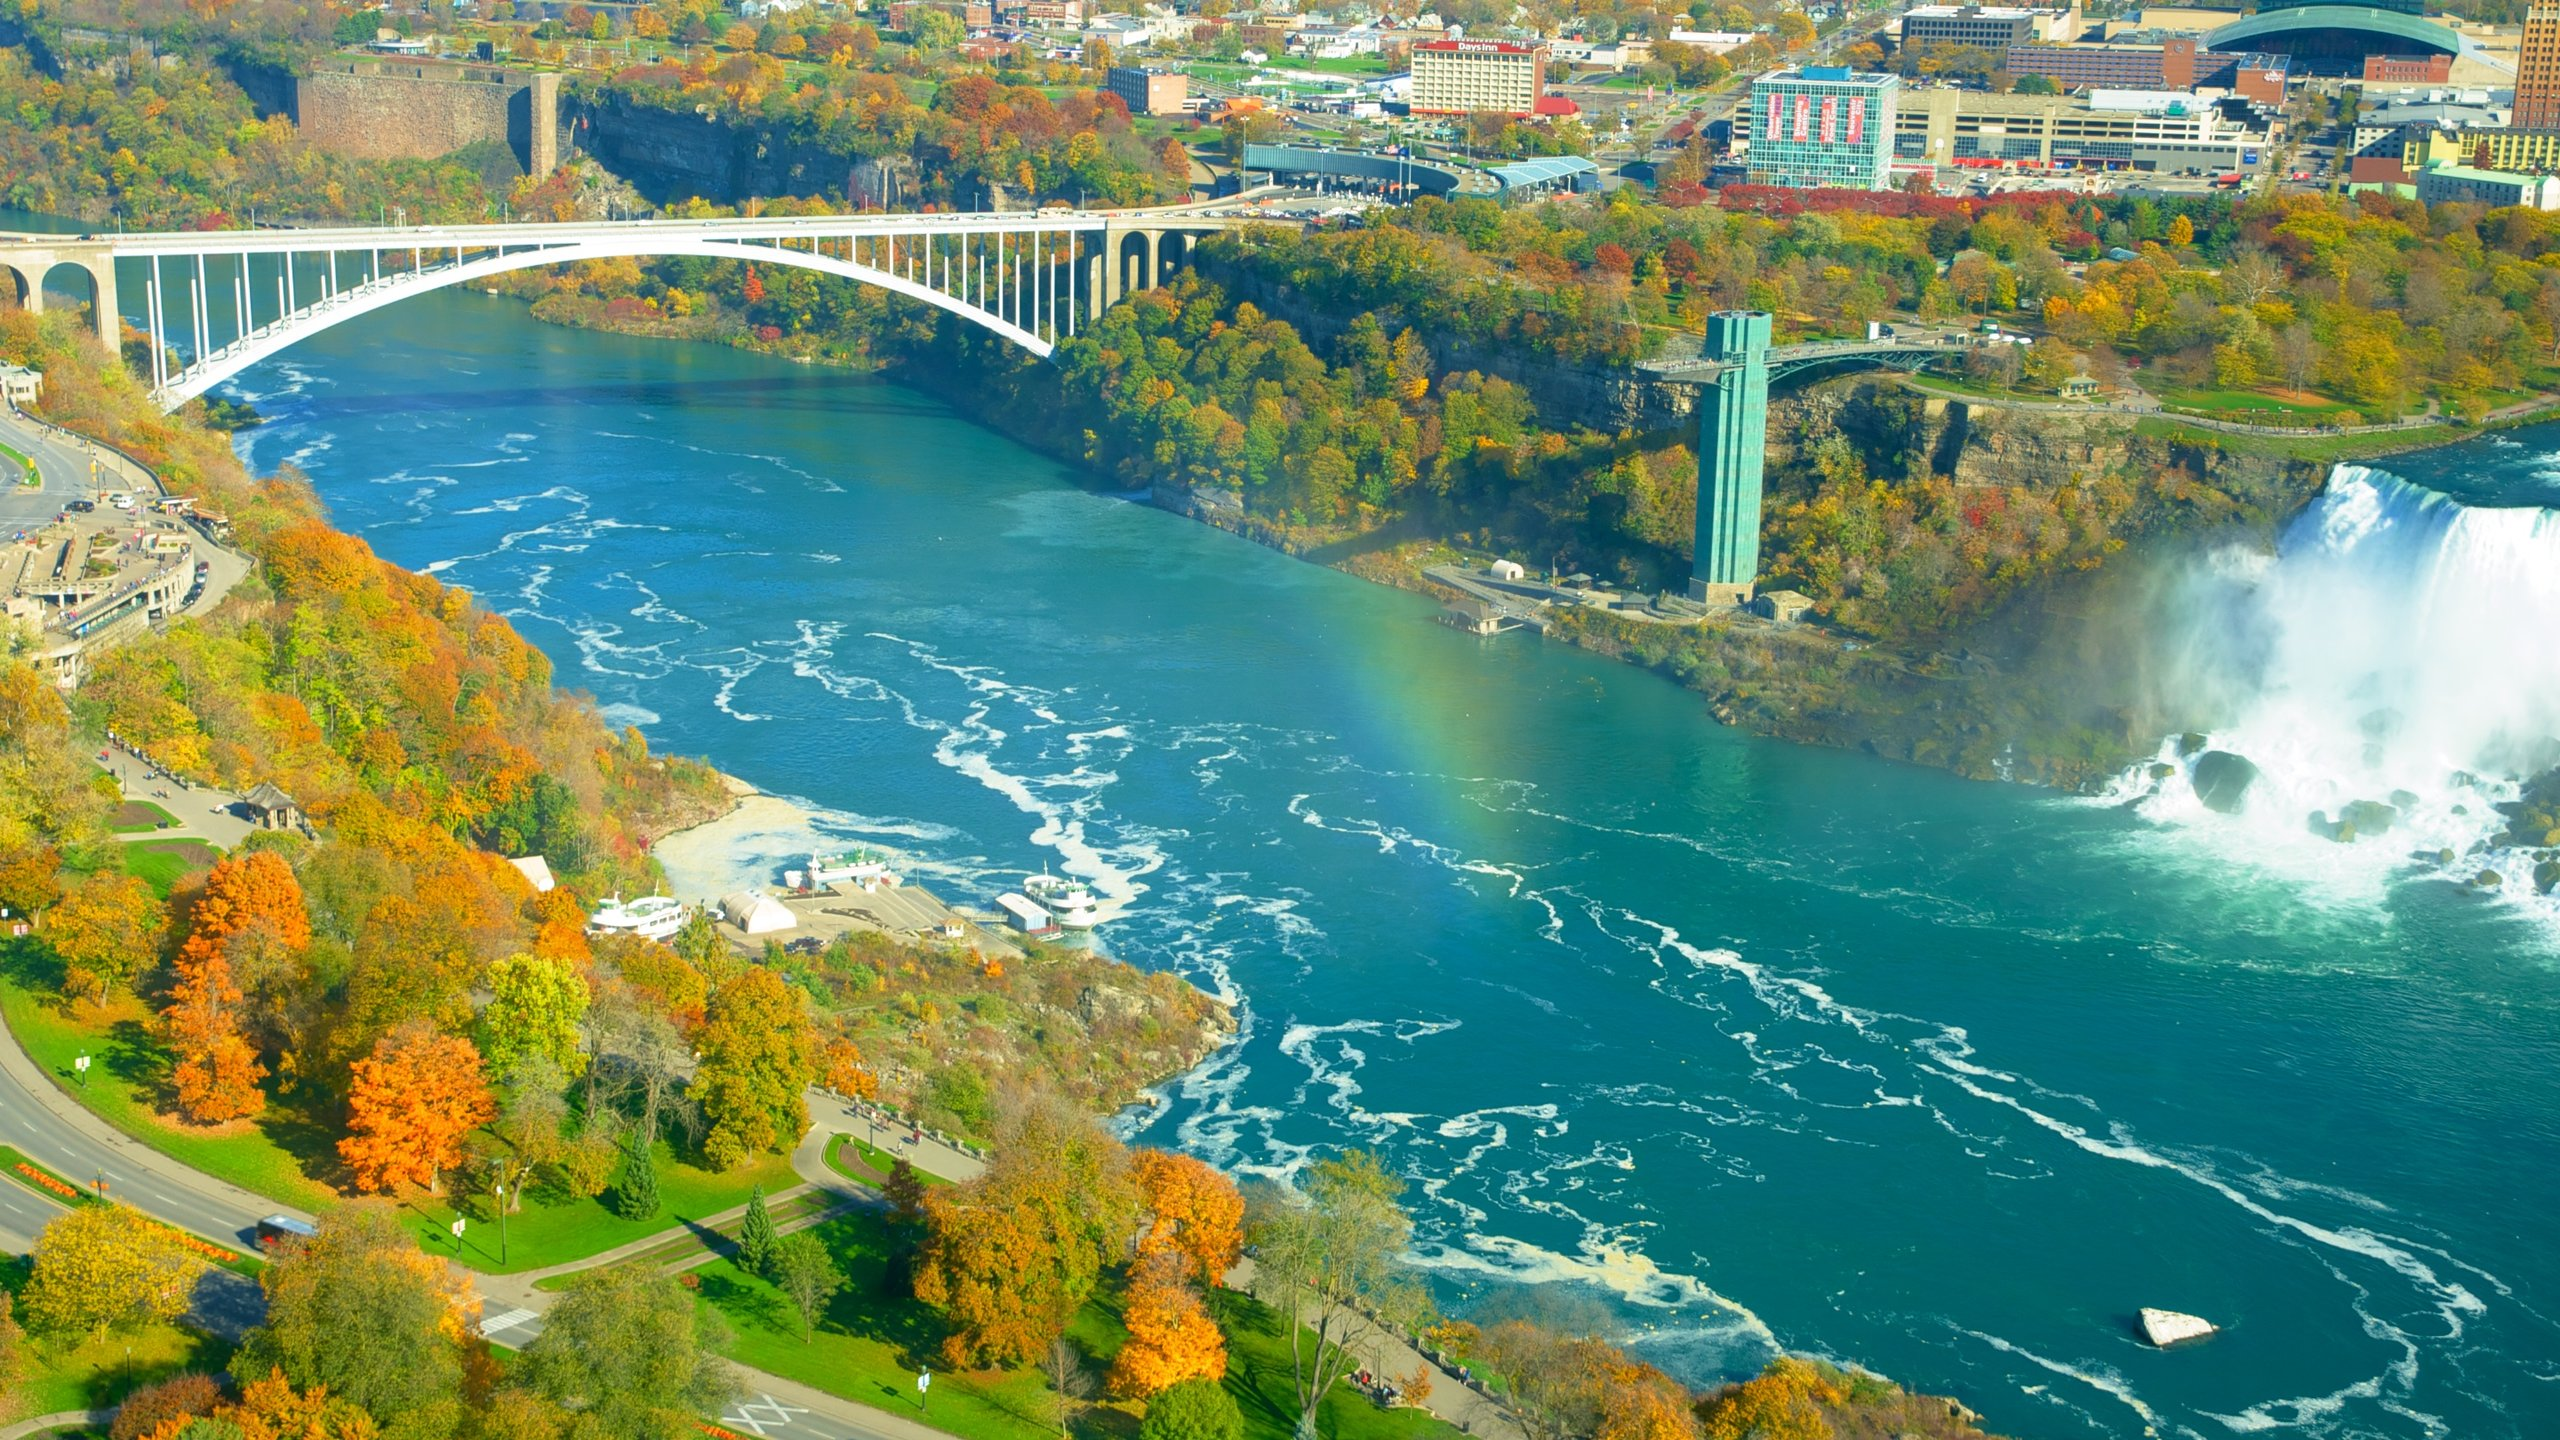 Walk, cycle, or drive across the border and enjoy an unimpeded view of Niagara Falls.